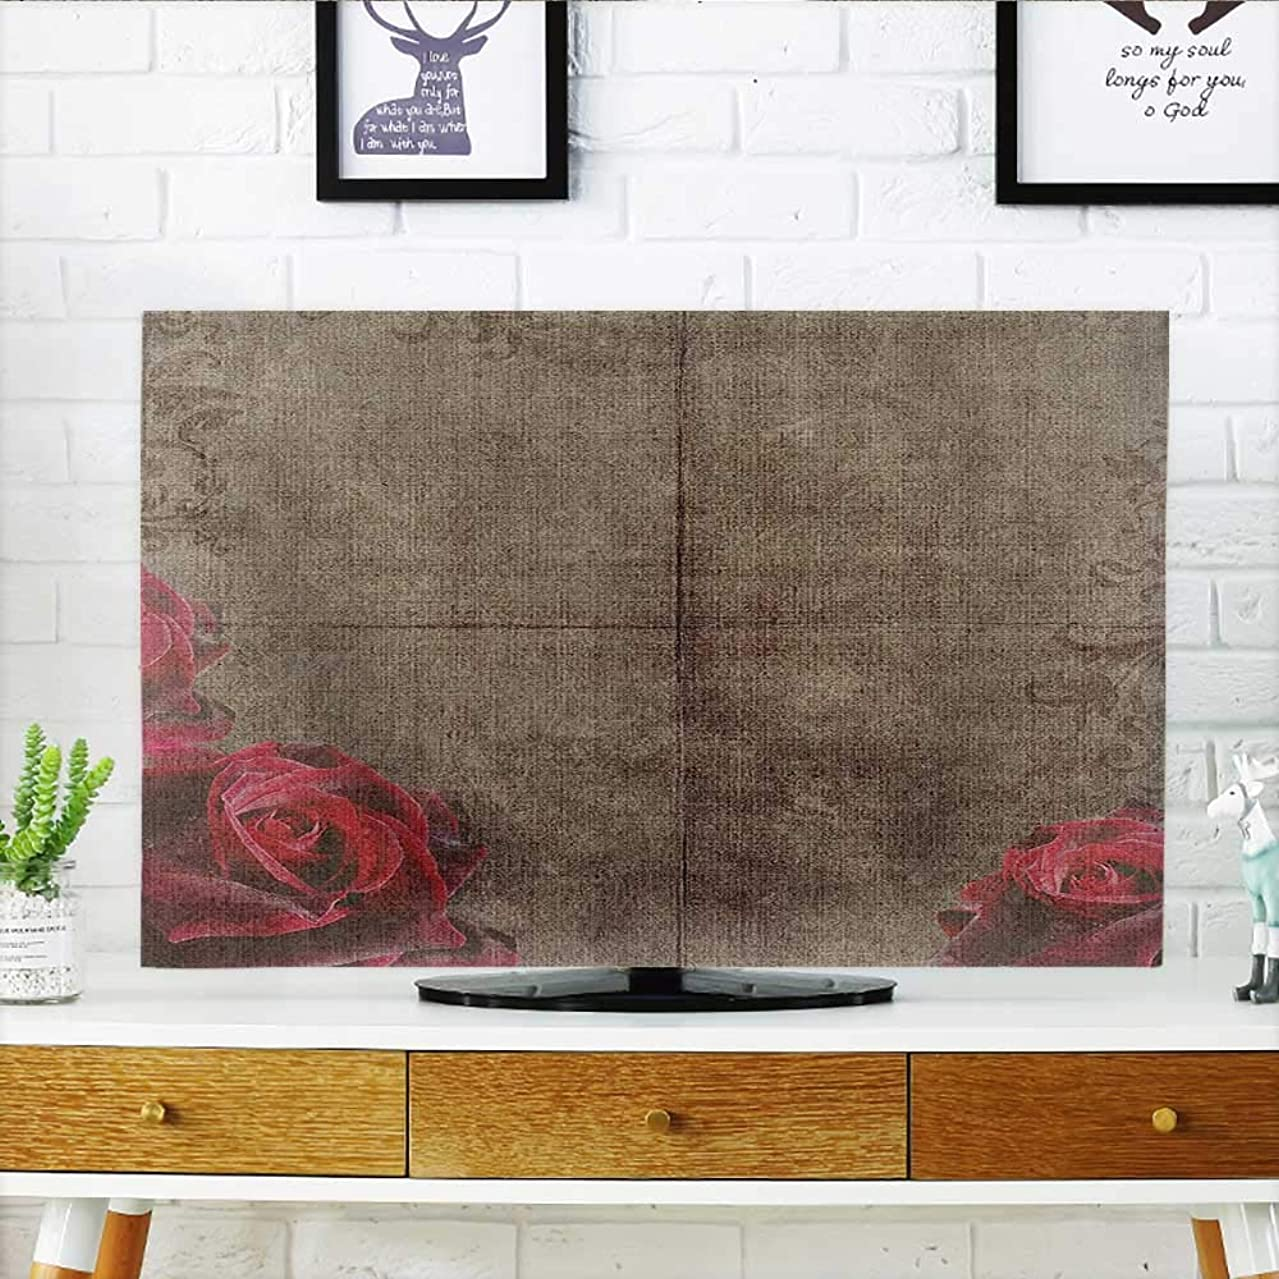 Jiahonghome Front Flip Top Decorative Artwork with Roses Ornamental Frame Image Nostalgic Vintage Style Red Brown Front Flip Top W20 x H40 INCH/TV 40